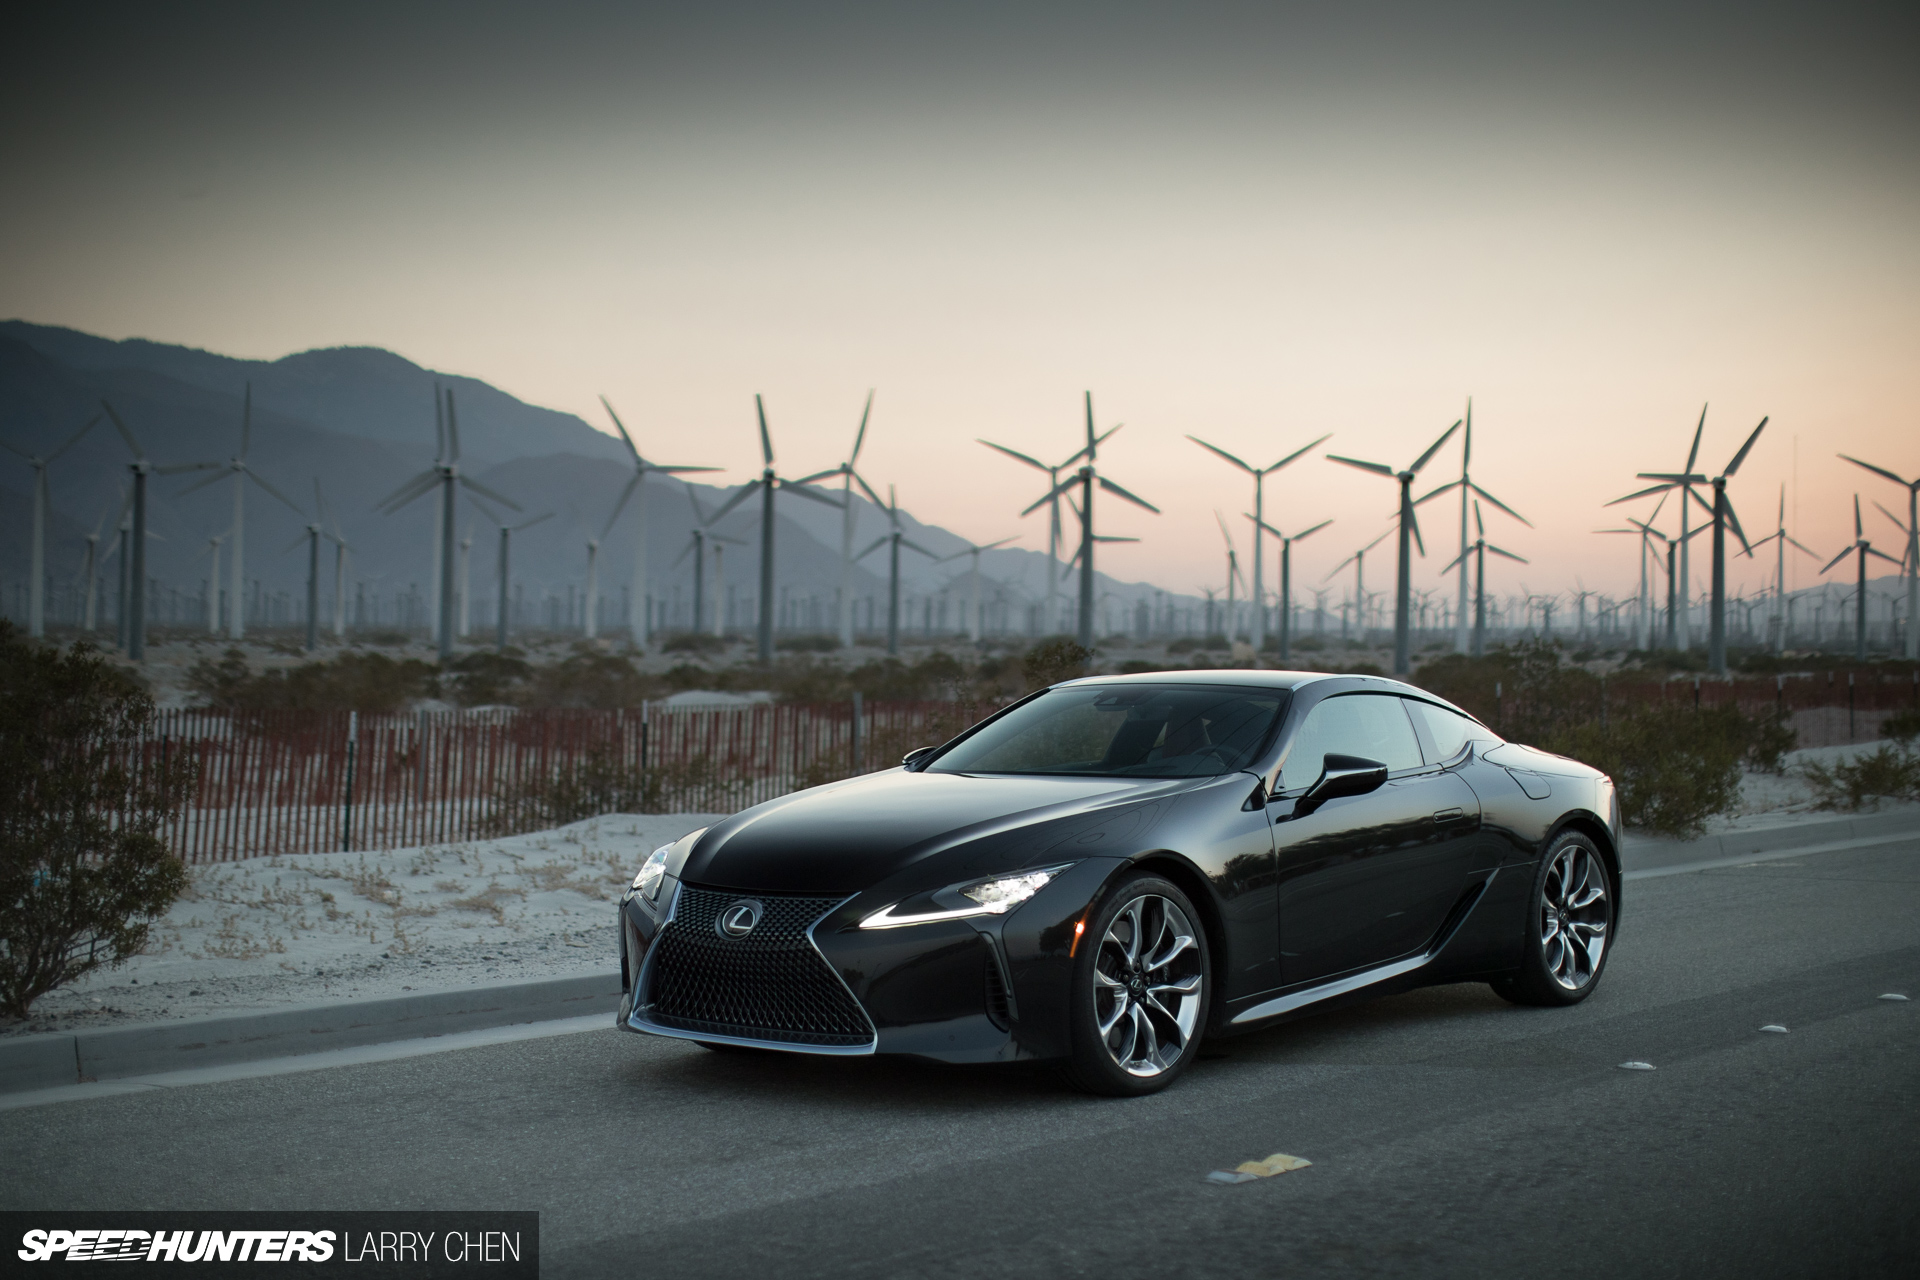 Lexus Lc 500 Interior >> An Encounter With The Lexus LC 500 - Speedhunters